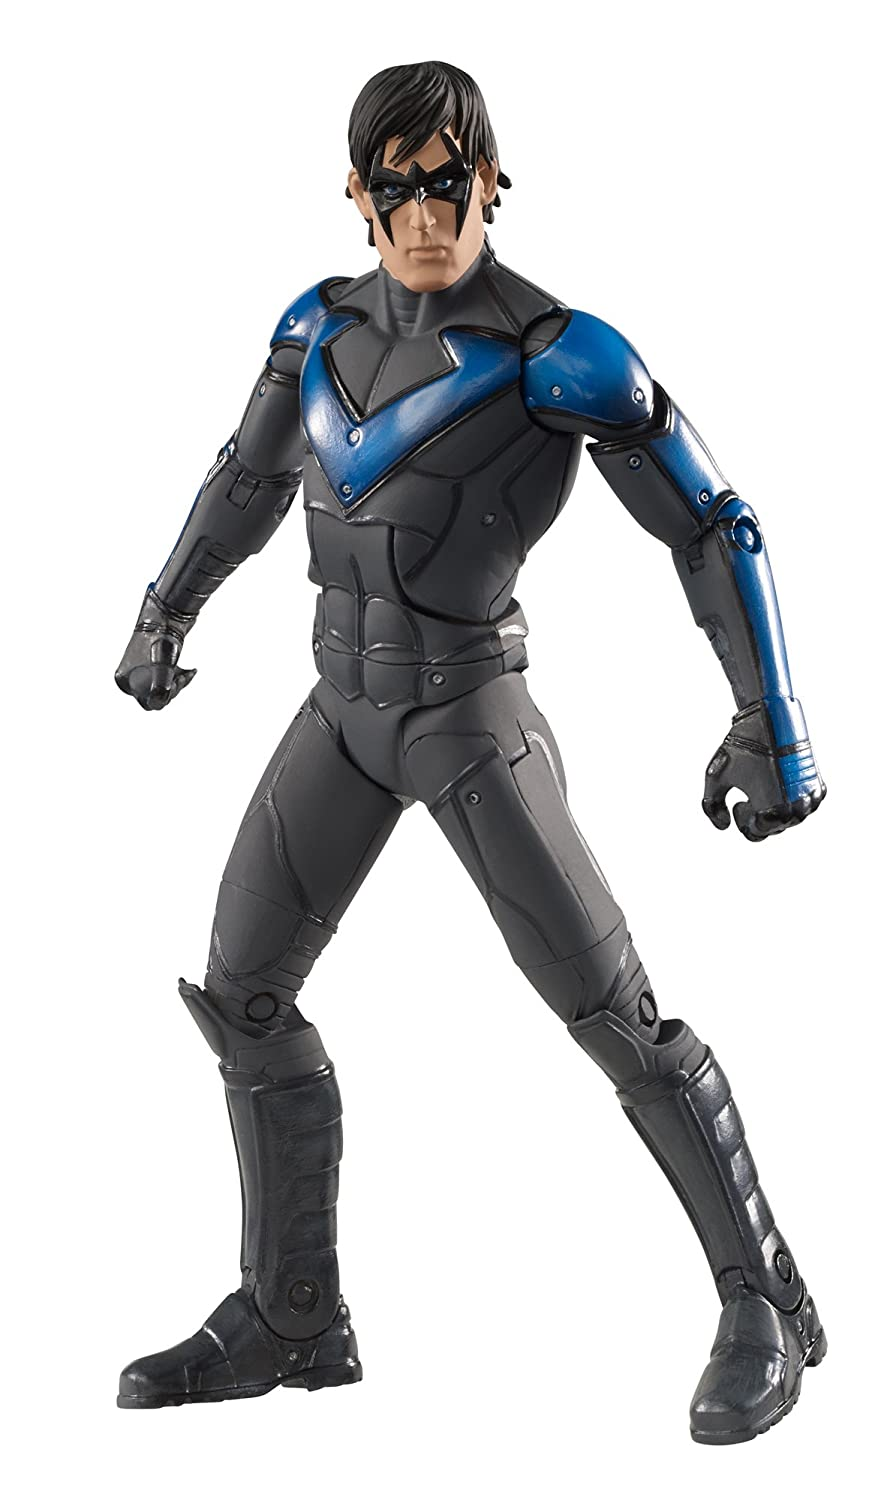 DC UNIVERSE BATMAN ARKHAM CITY LEGACY EDITION NIGHTWING ACTION FIGURE